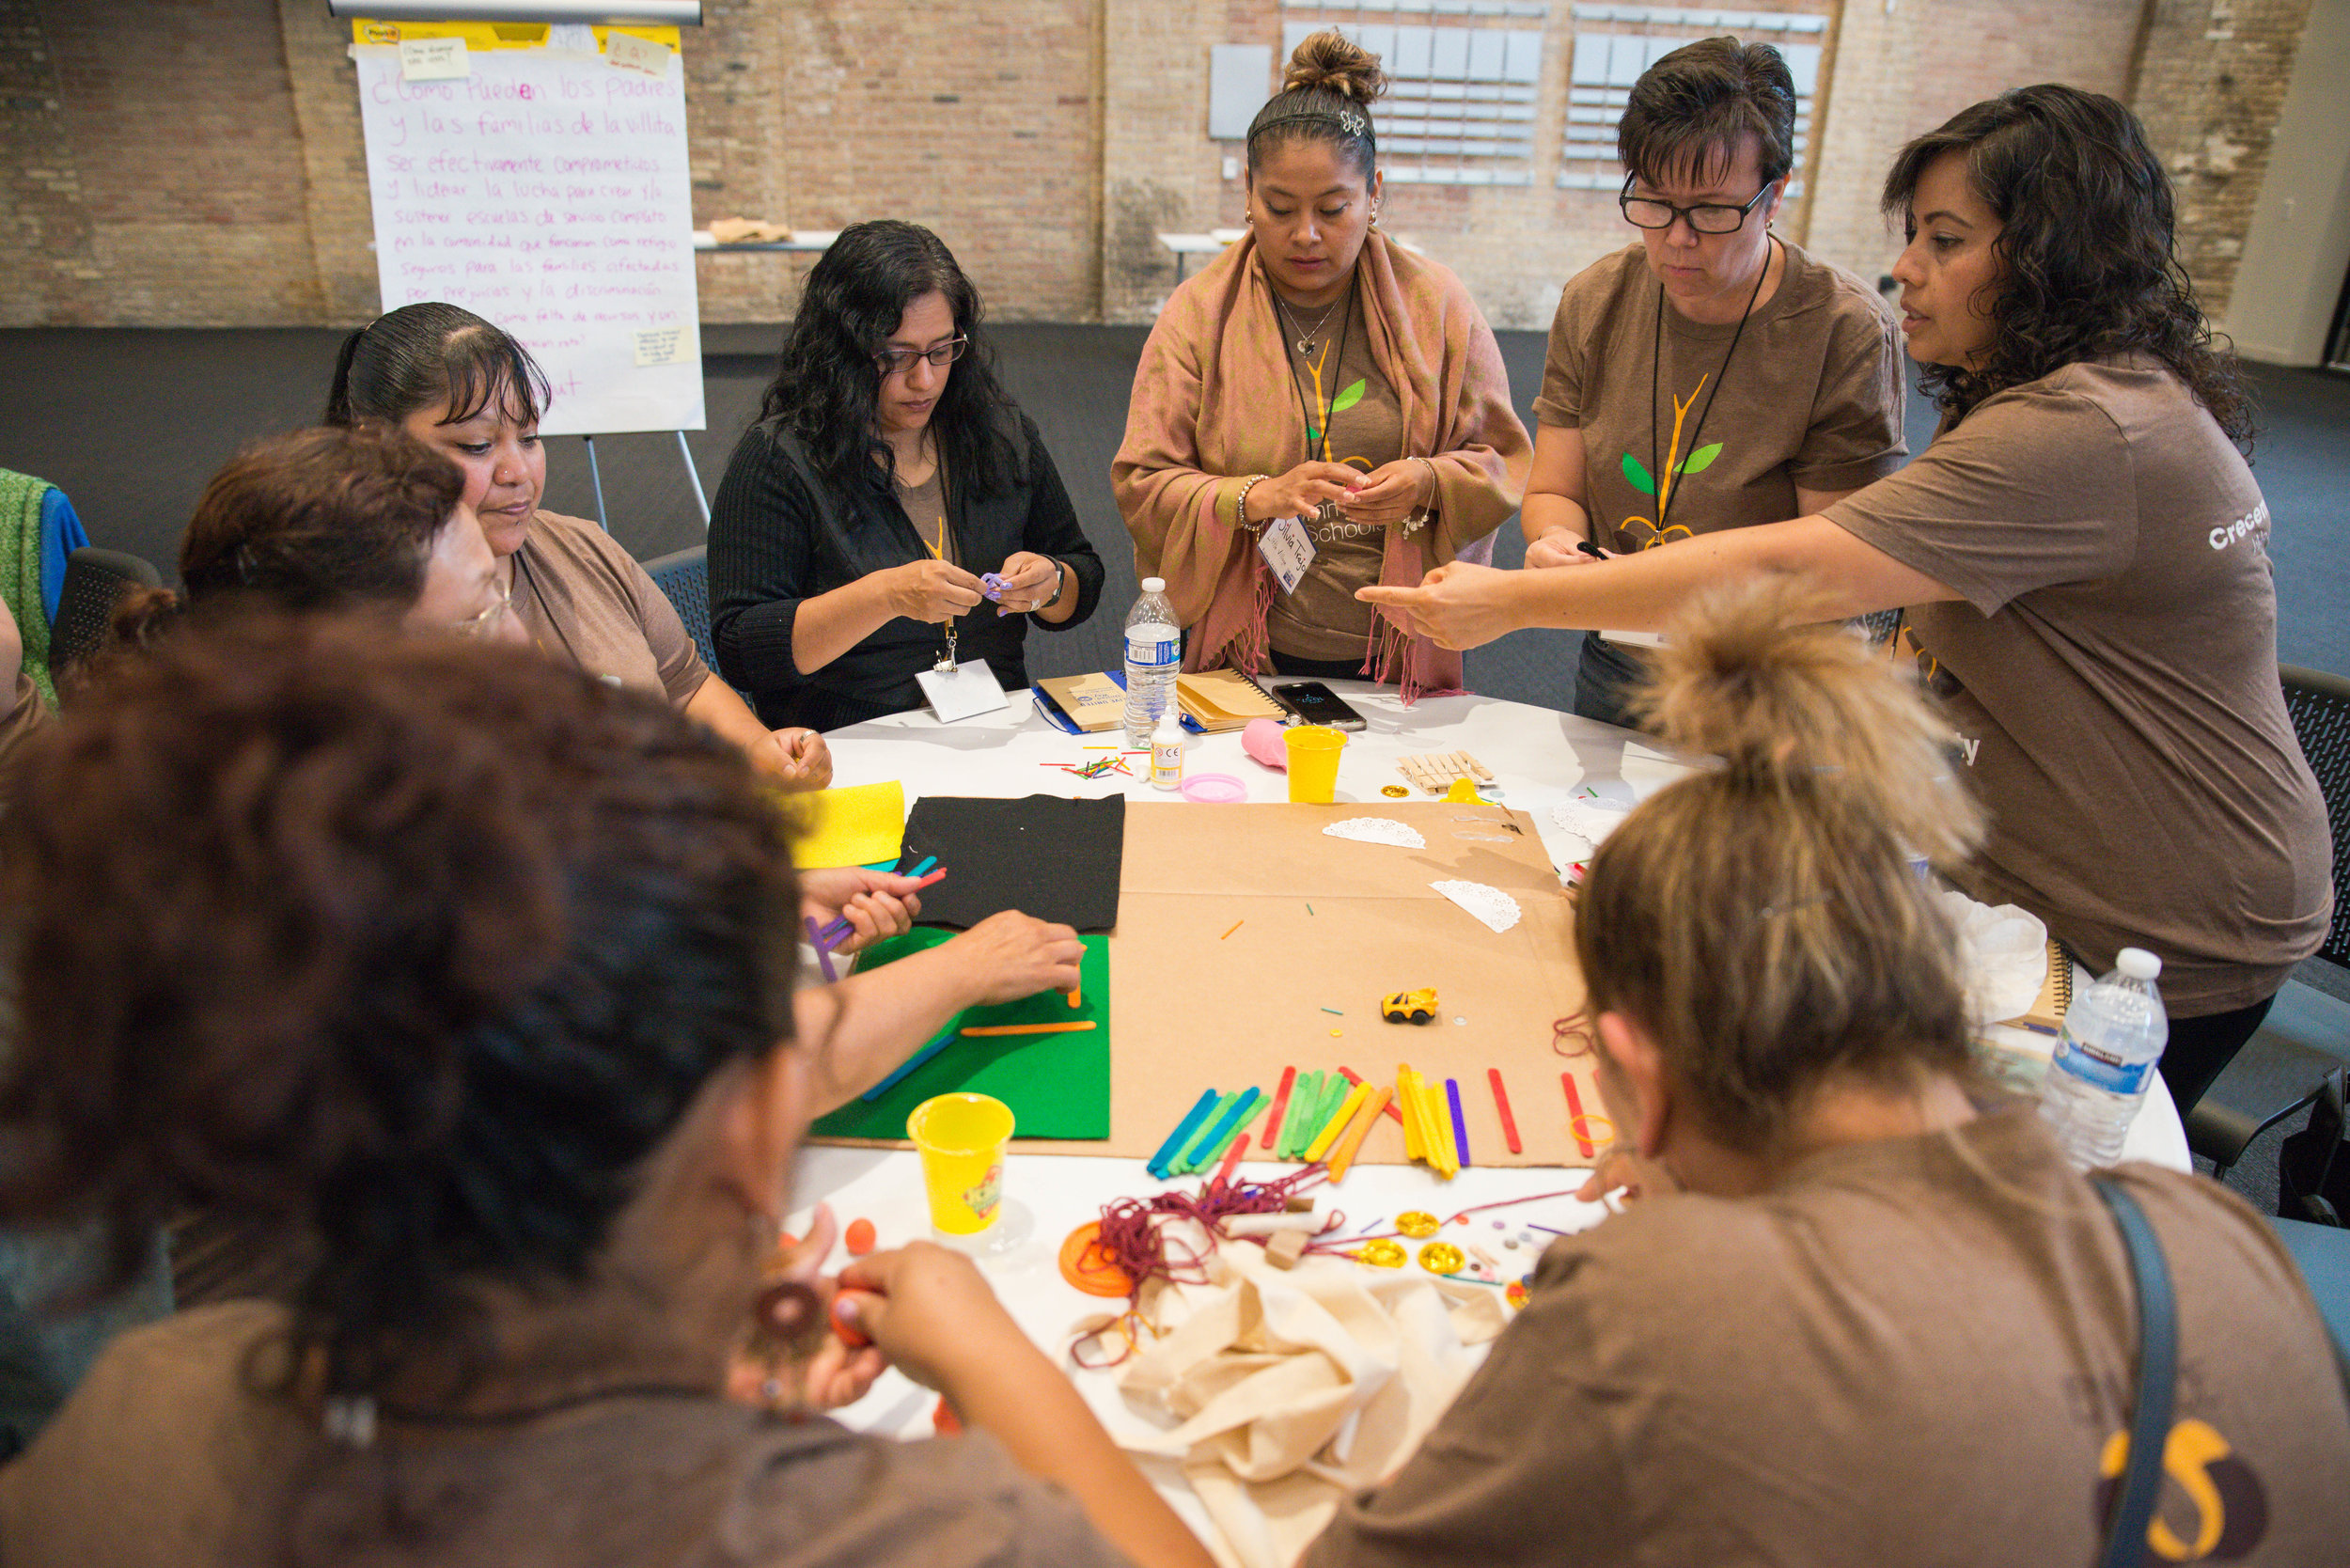 group participating in creative activity